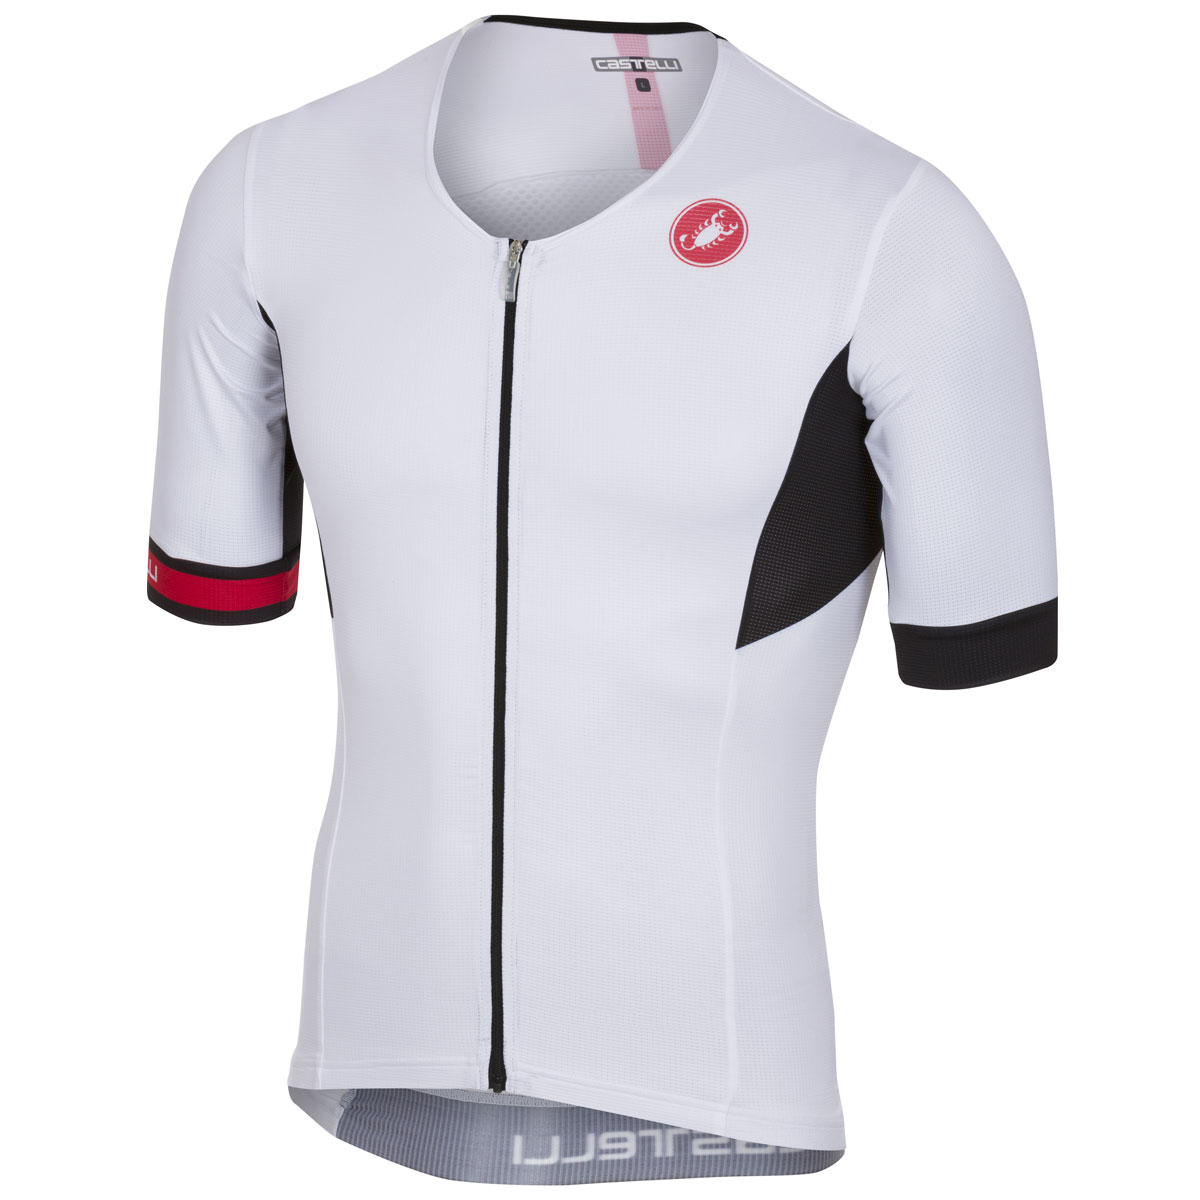 Castelli Free Speed Race jersey - White